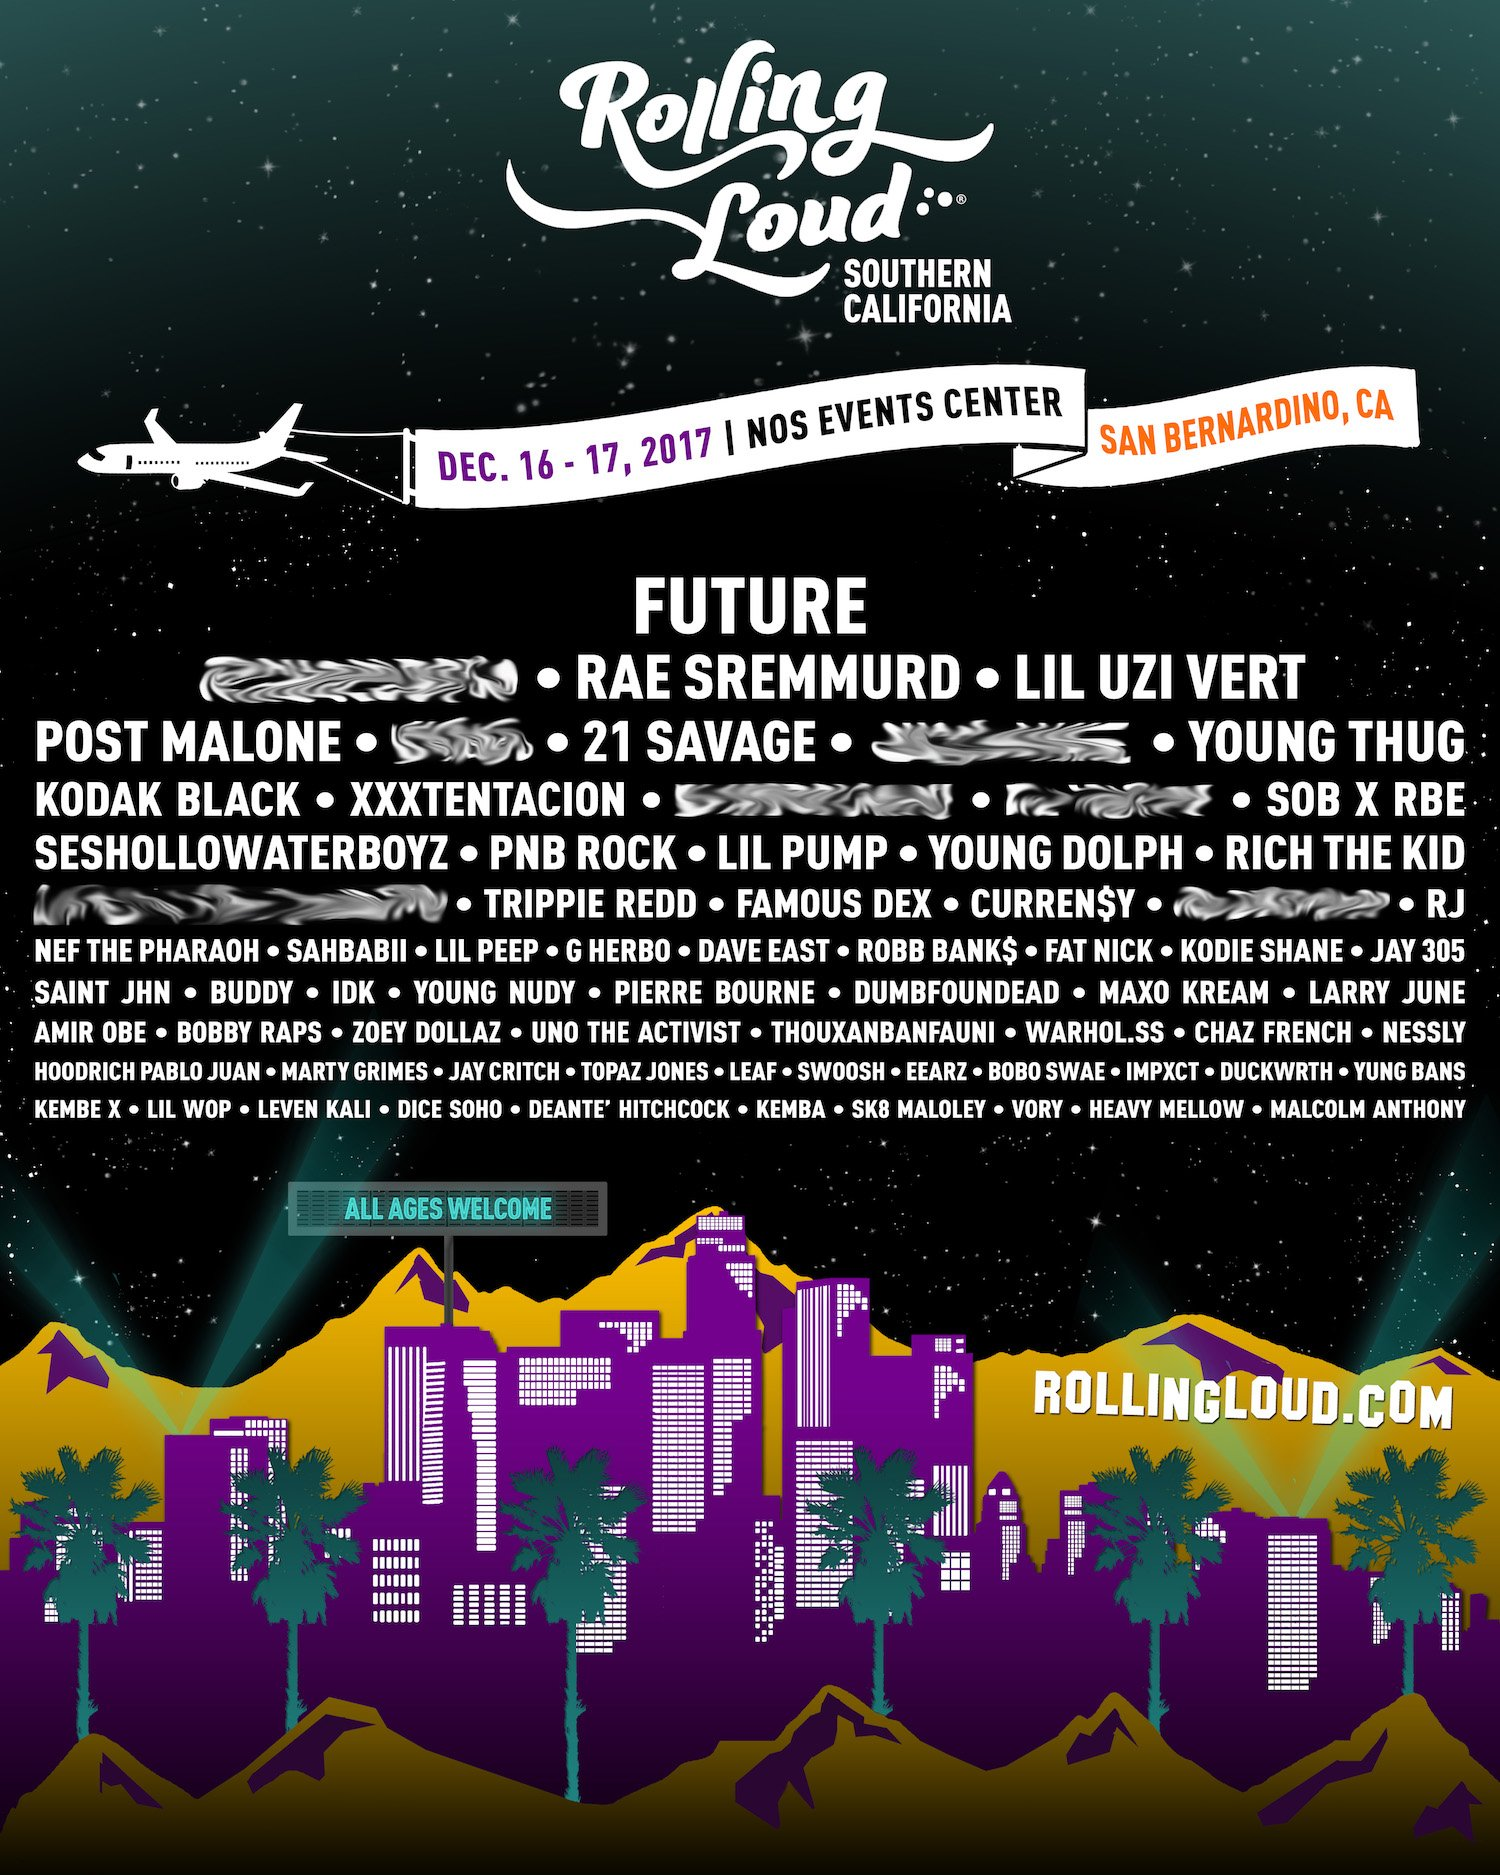 Post Malone Stage Fall: Rolling Loud SoCal 2017 Hip-Hop Festival Lineup Announced